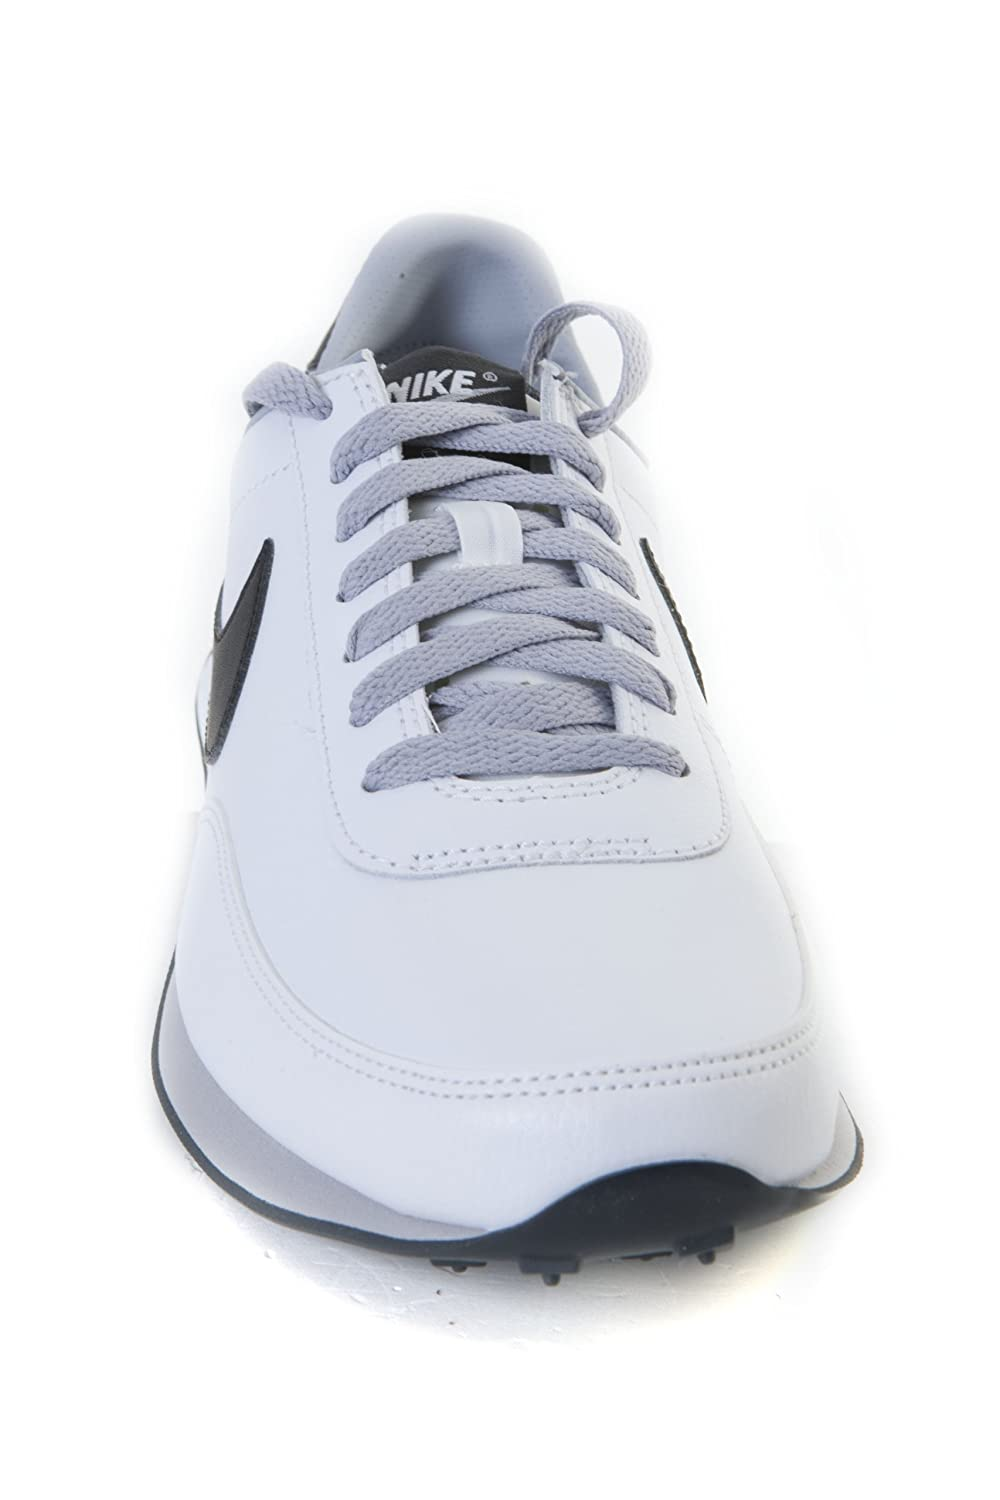 9b3b058f61e NIKE Elite Leather SI White Trainer 444337 102 for Men  Amazon.co.uk  Shoes    Bags